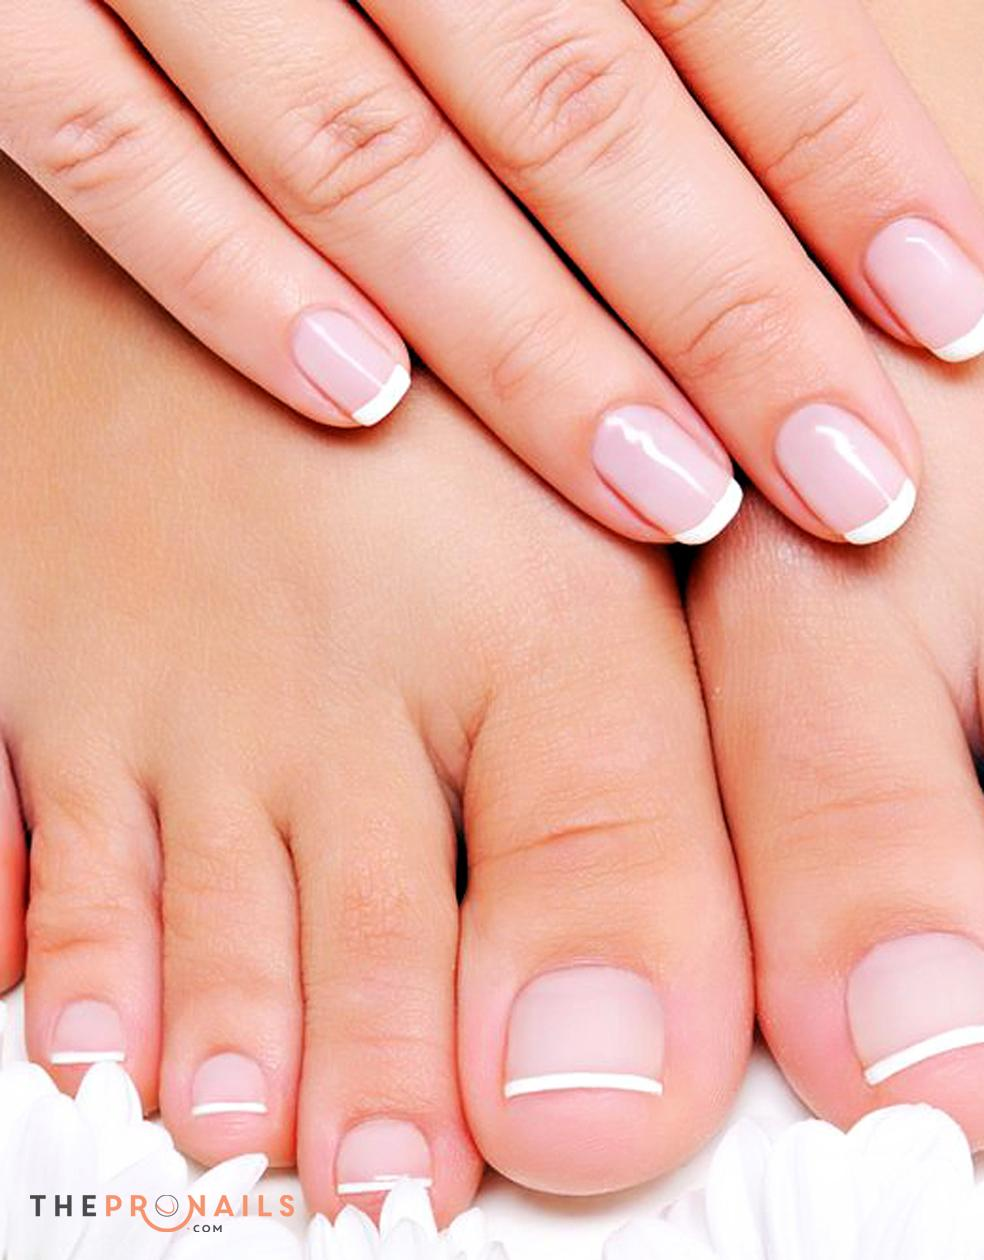 Benefits Of Regular Pedicures Everyone Knows That It Feels Nice To Get A Pedicure Getting Some Extra Time Spent On Pampering The Toes And Legs Is Always